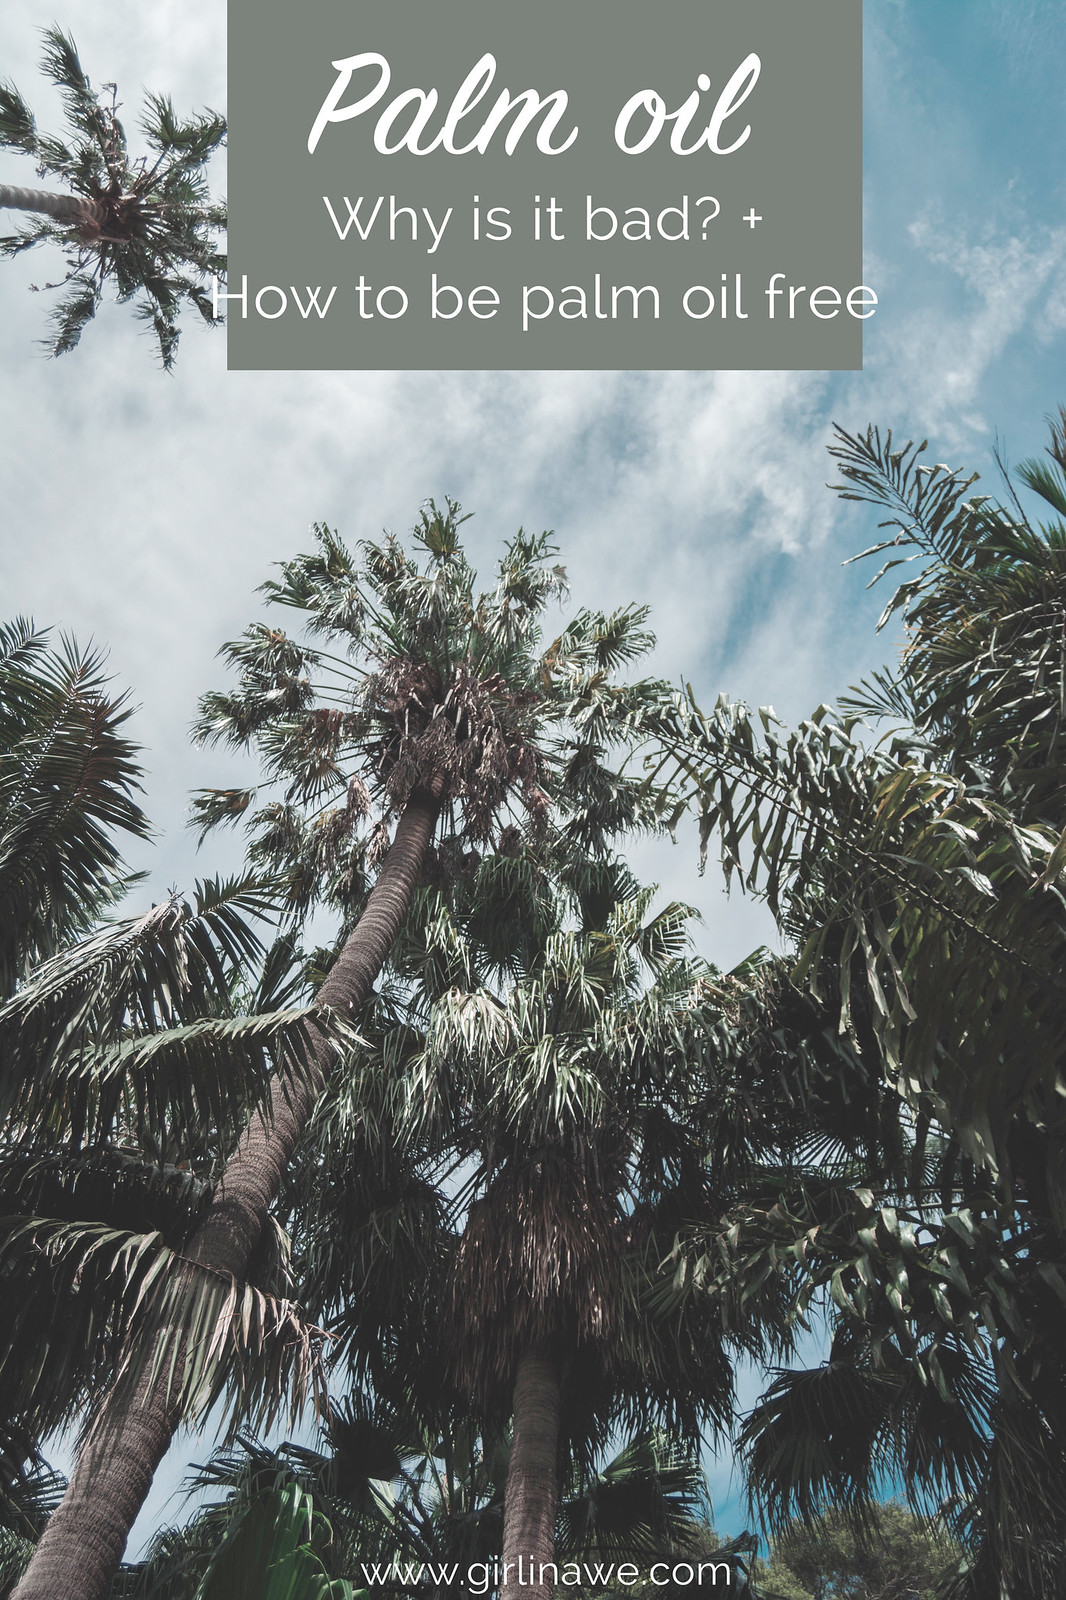 Palm oil; why is it bad & how to live palm oil free